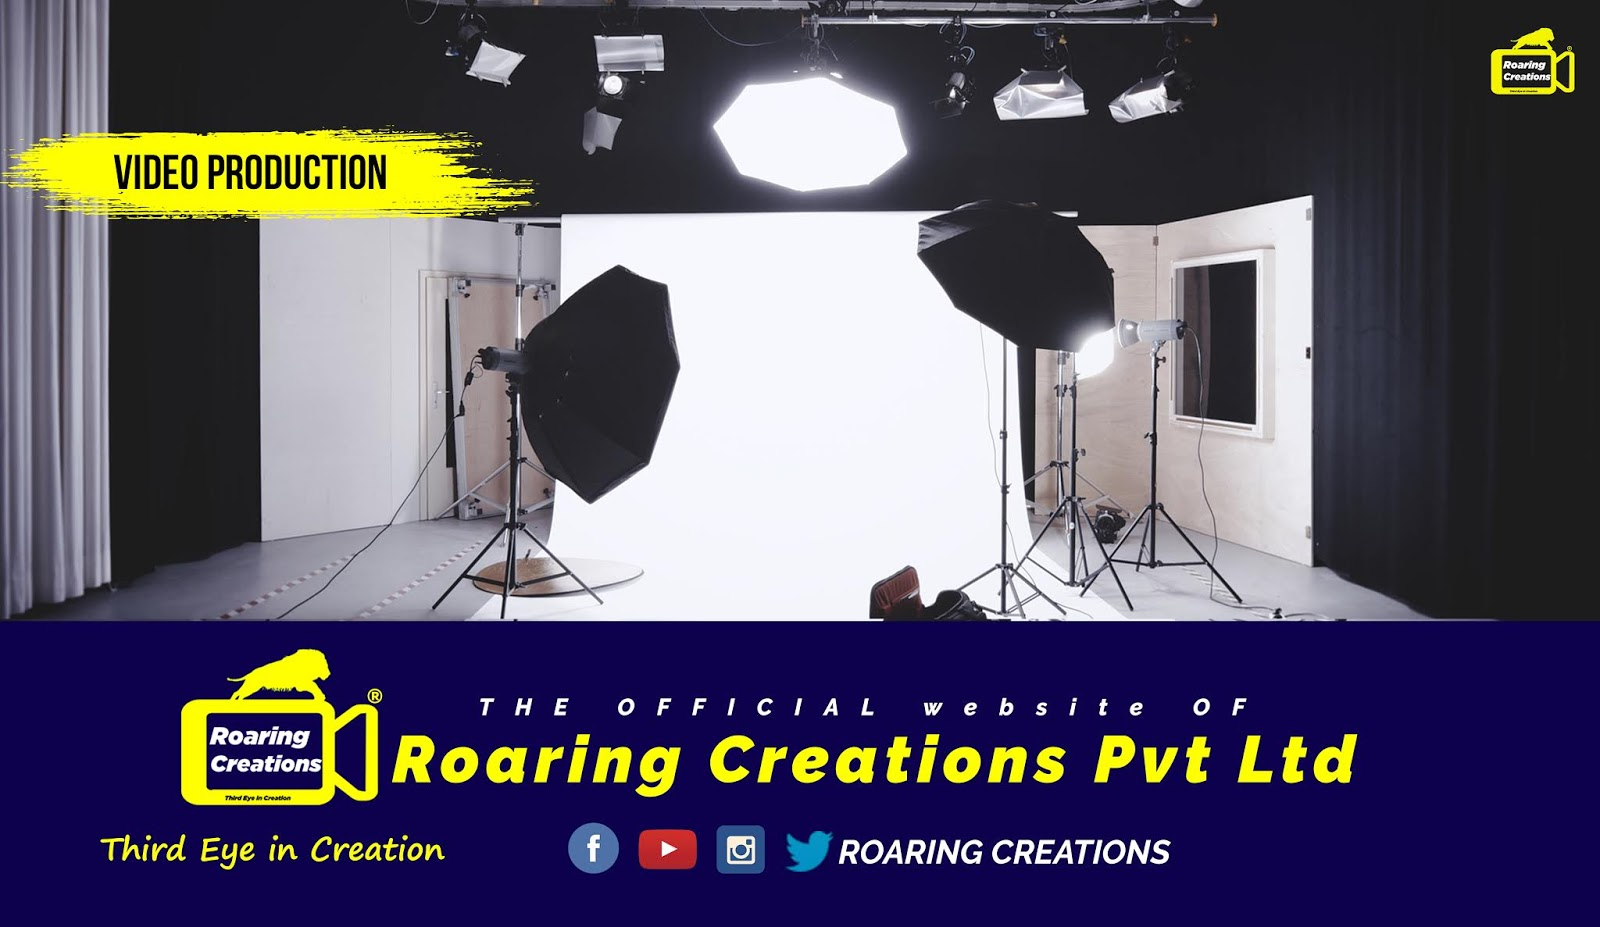 Video Production @ Roaring Creations